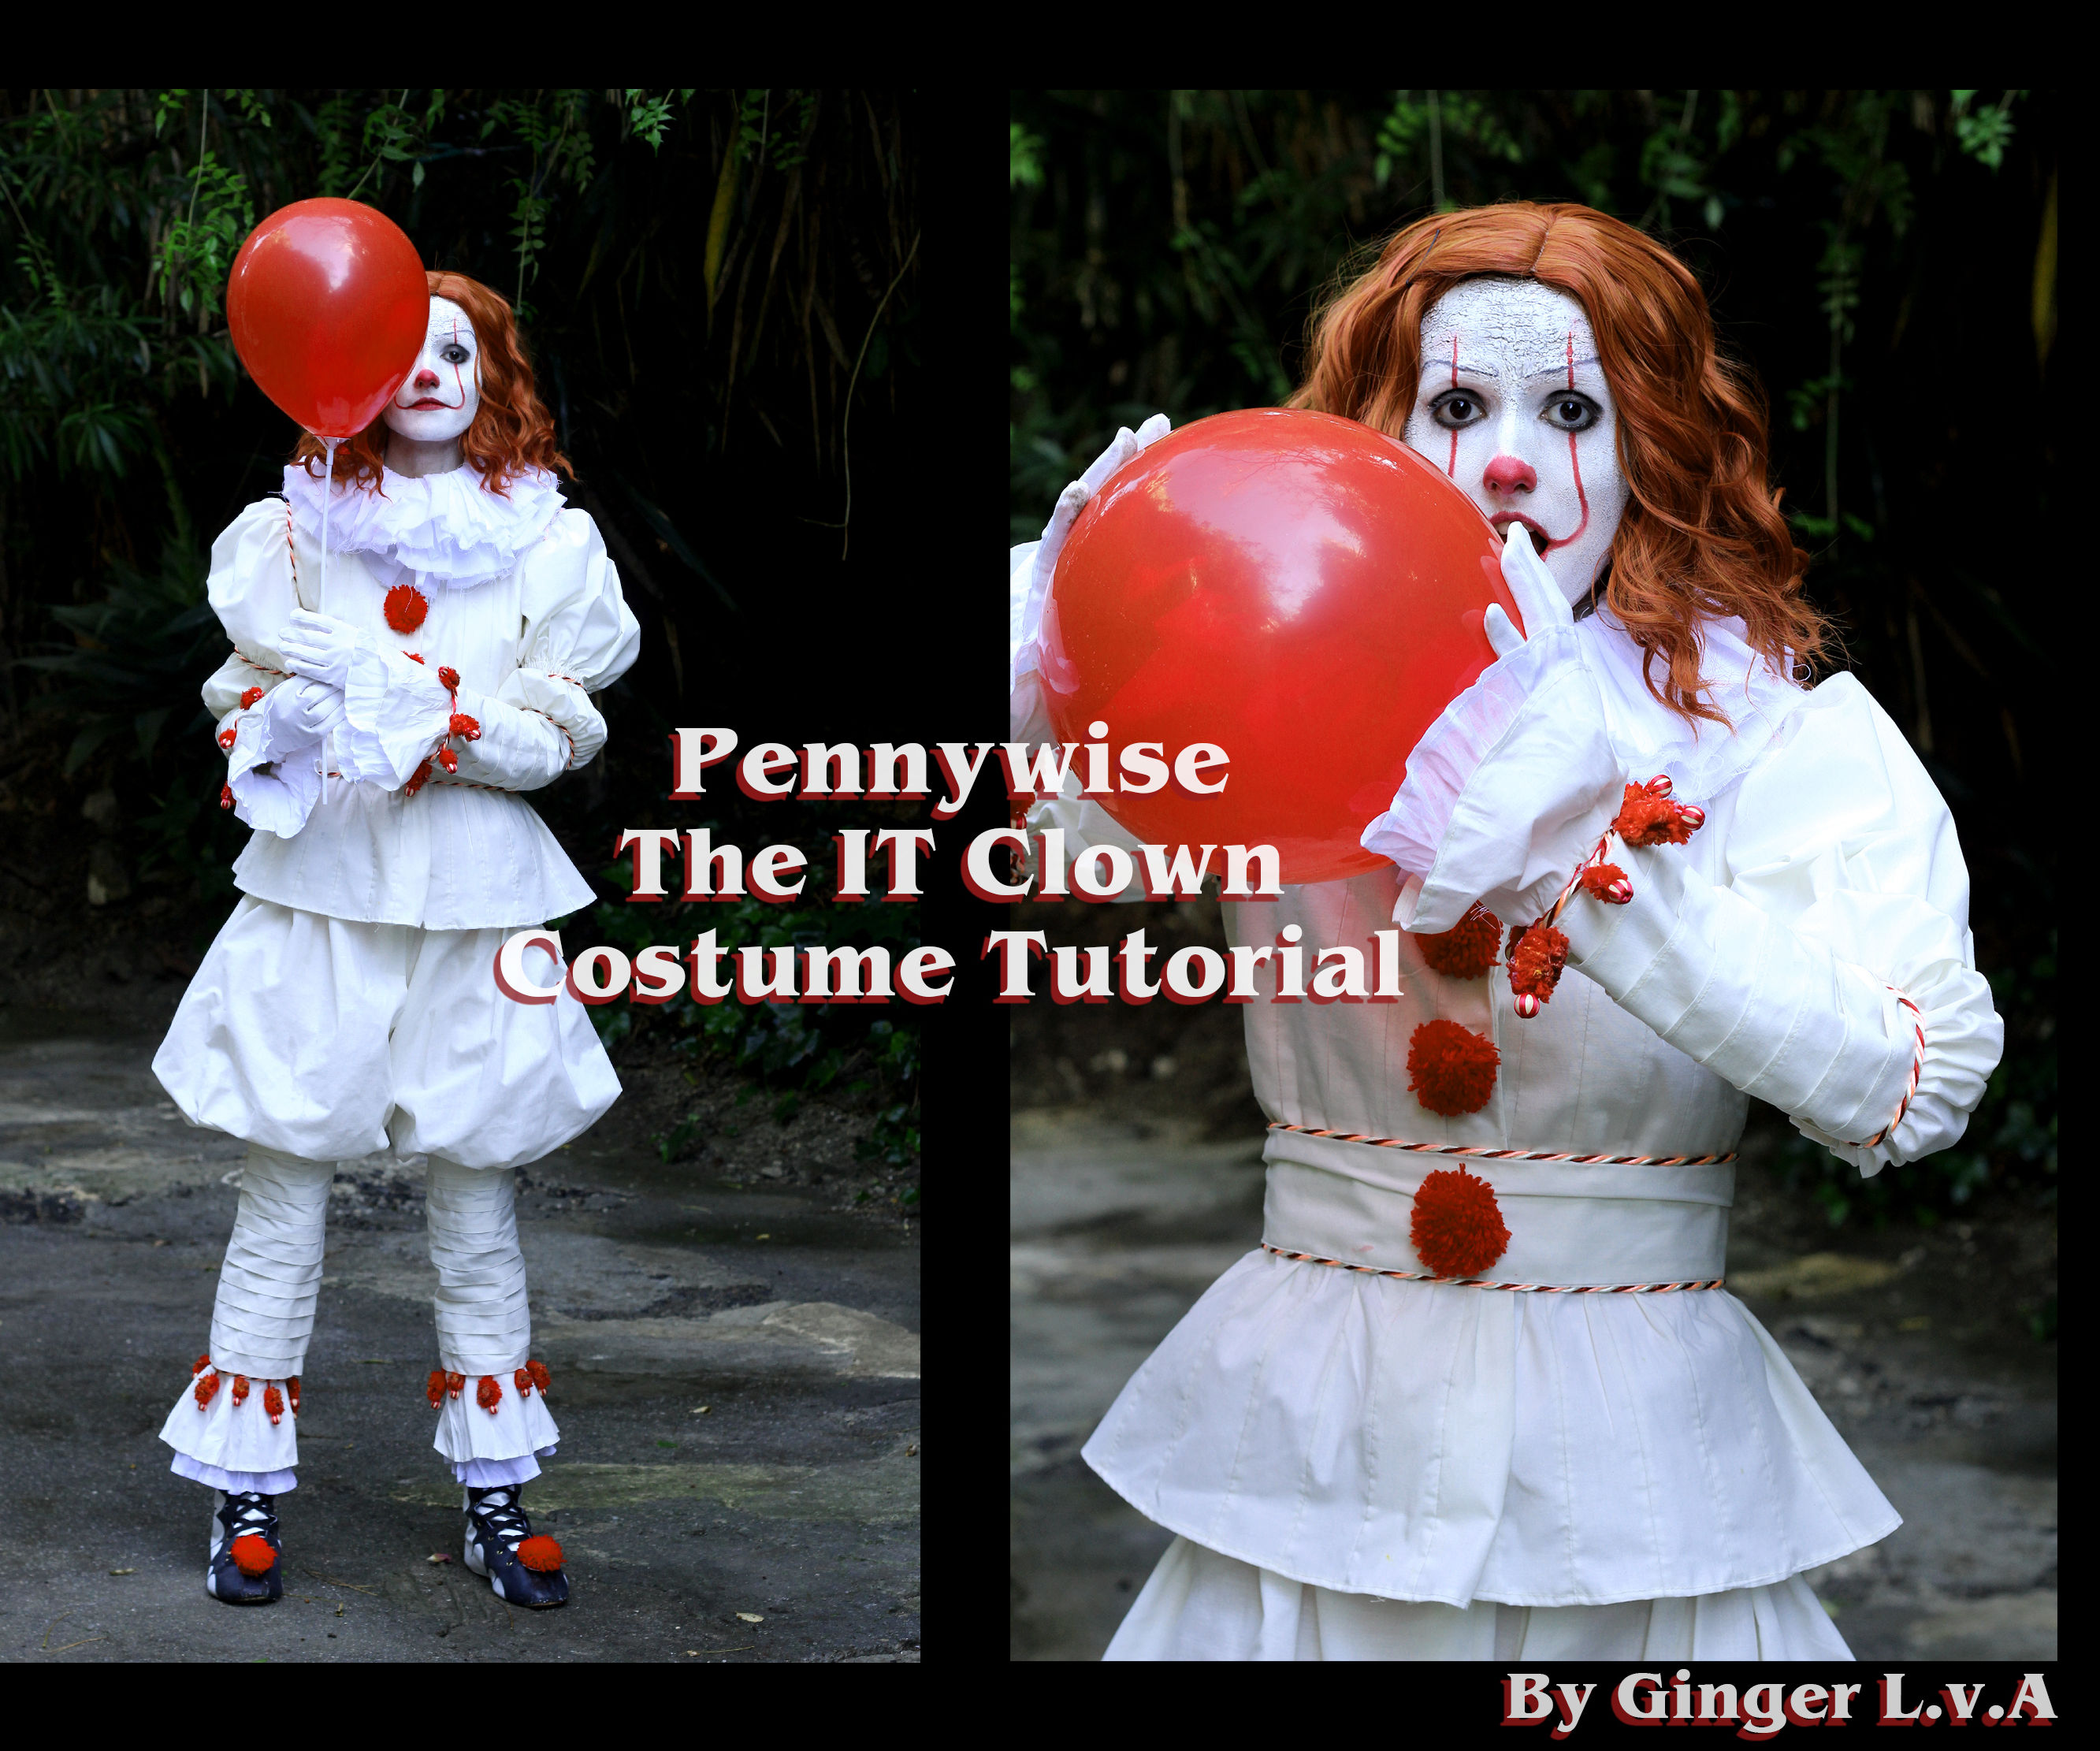 Pennywise the IT Clown: Full Costume + Shoes + Make-up Tutorial